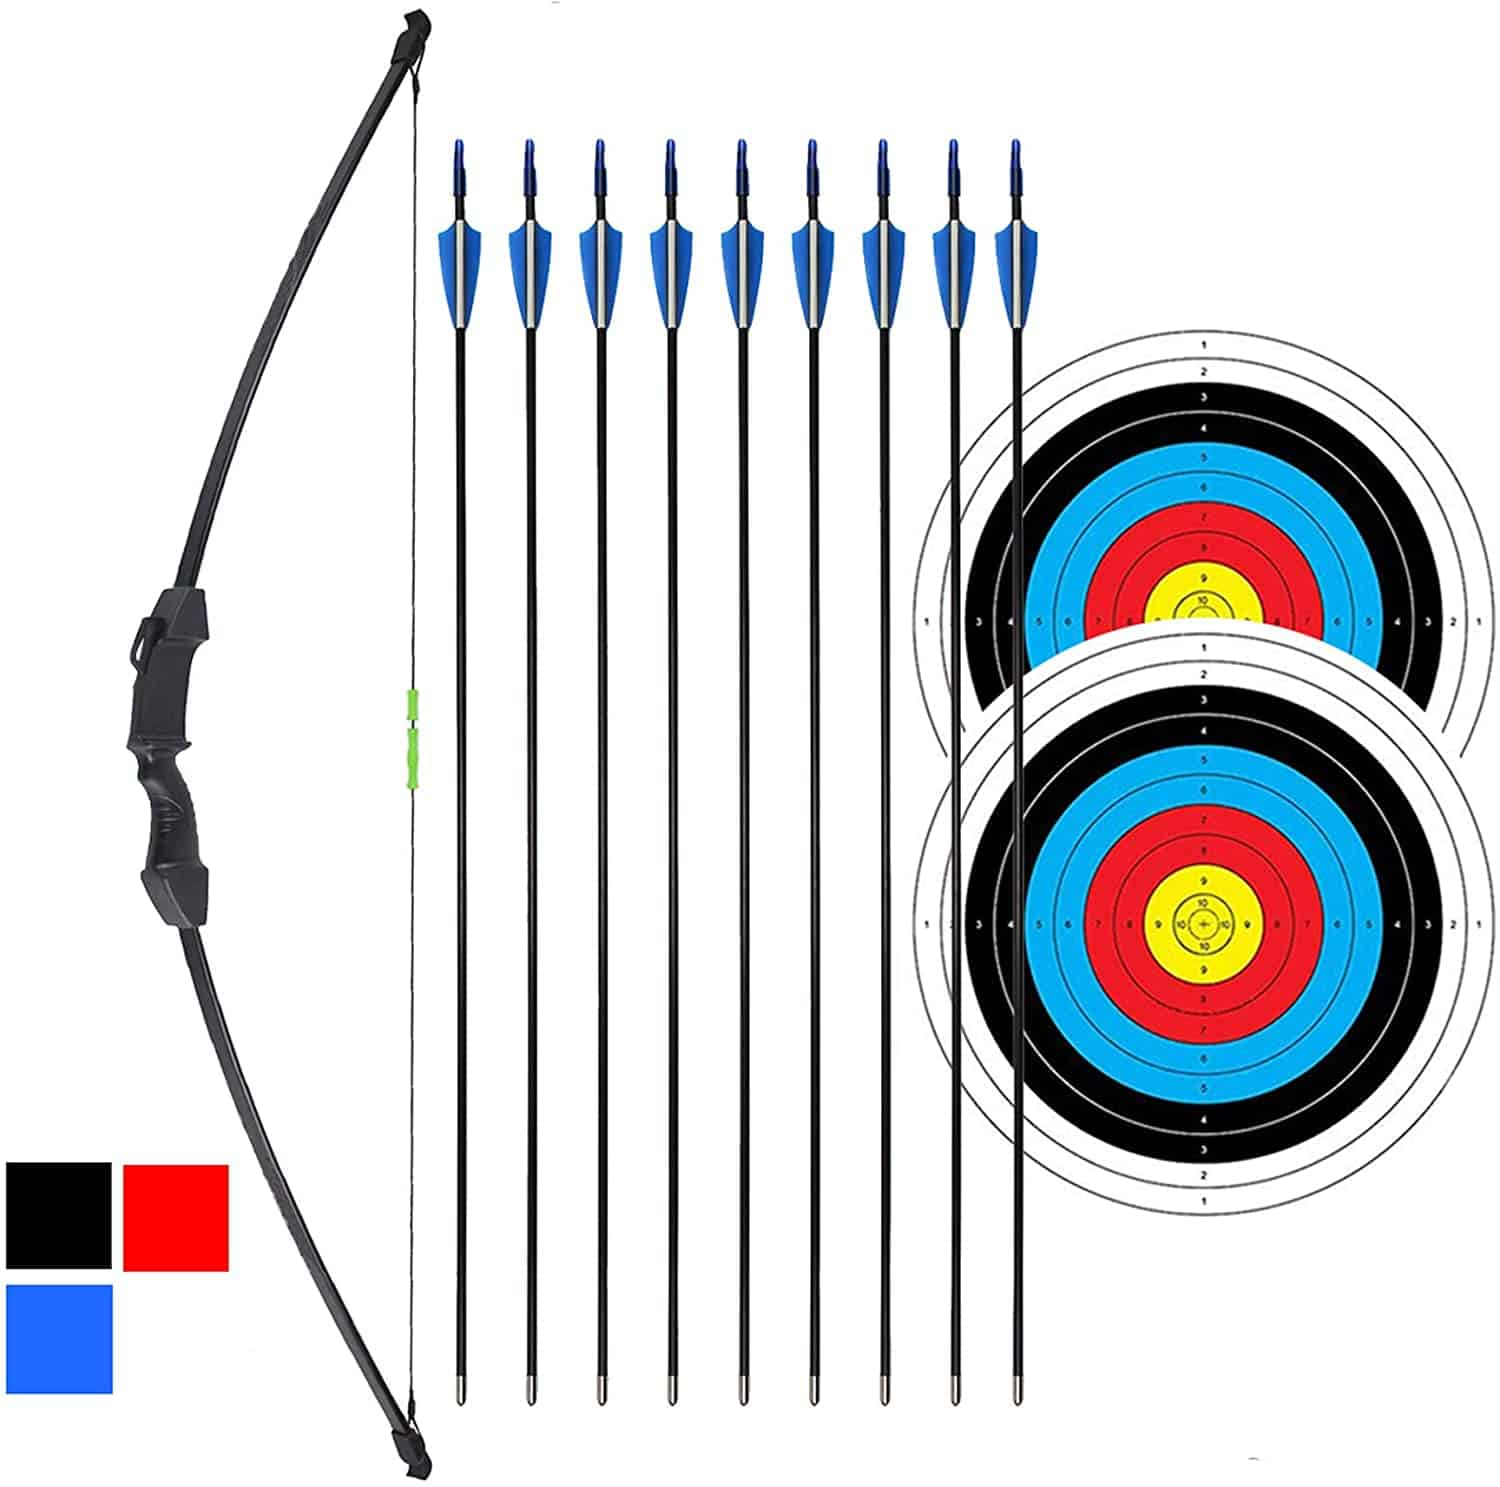 iMay 45 Inch Recurve Bow and Arrow Set